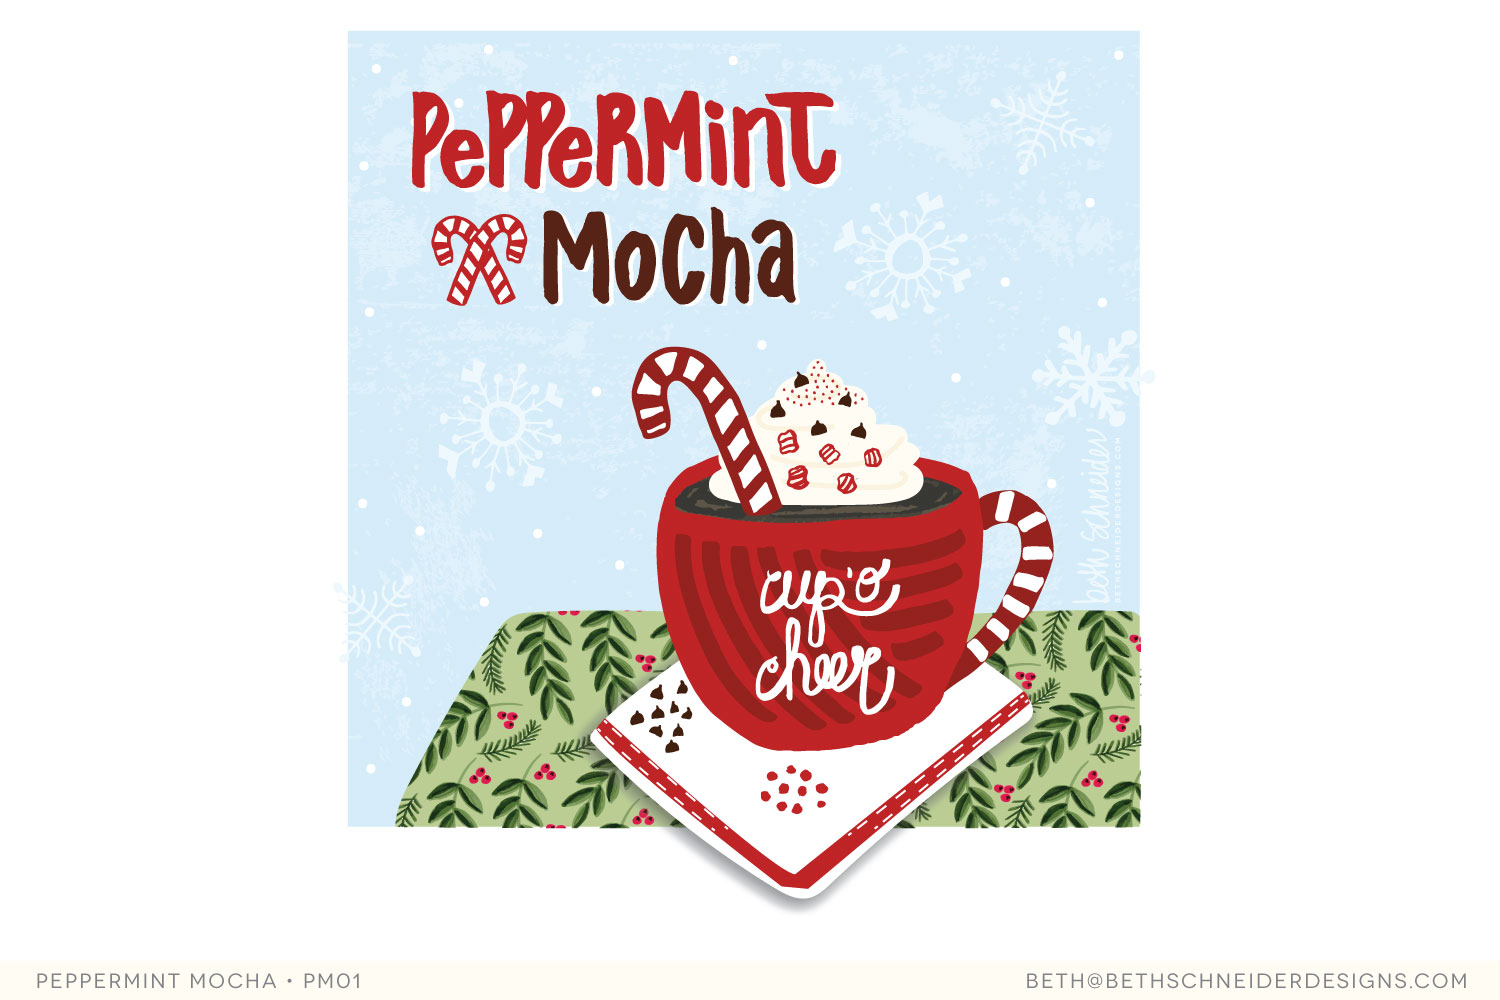 PEPPERMINTMOCHA-PM01.jpg